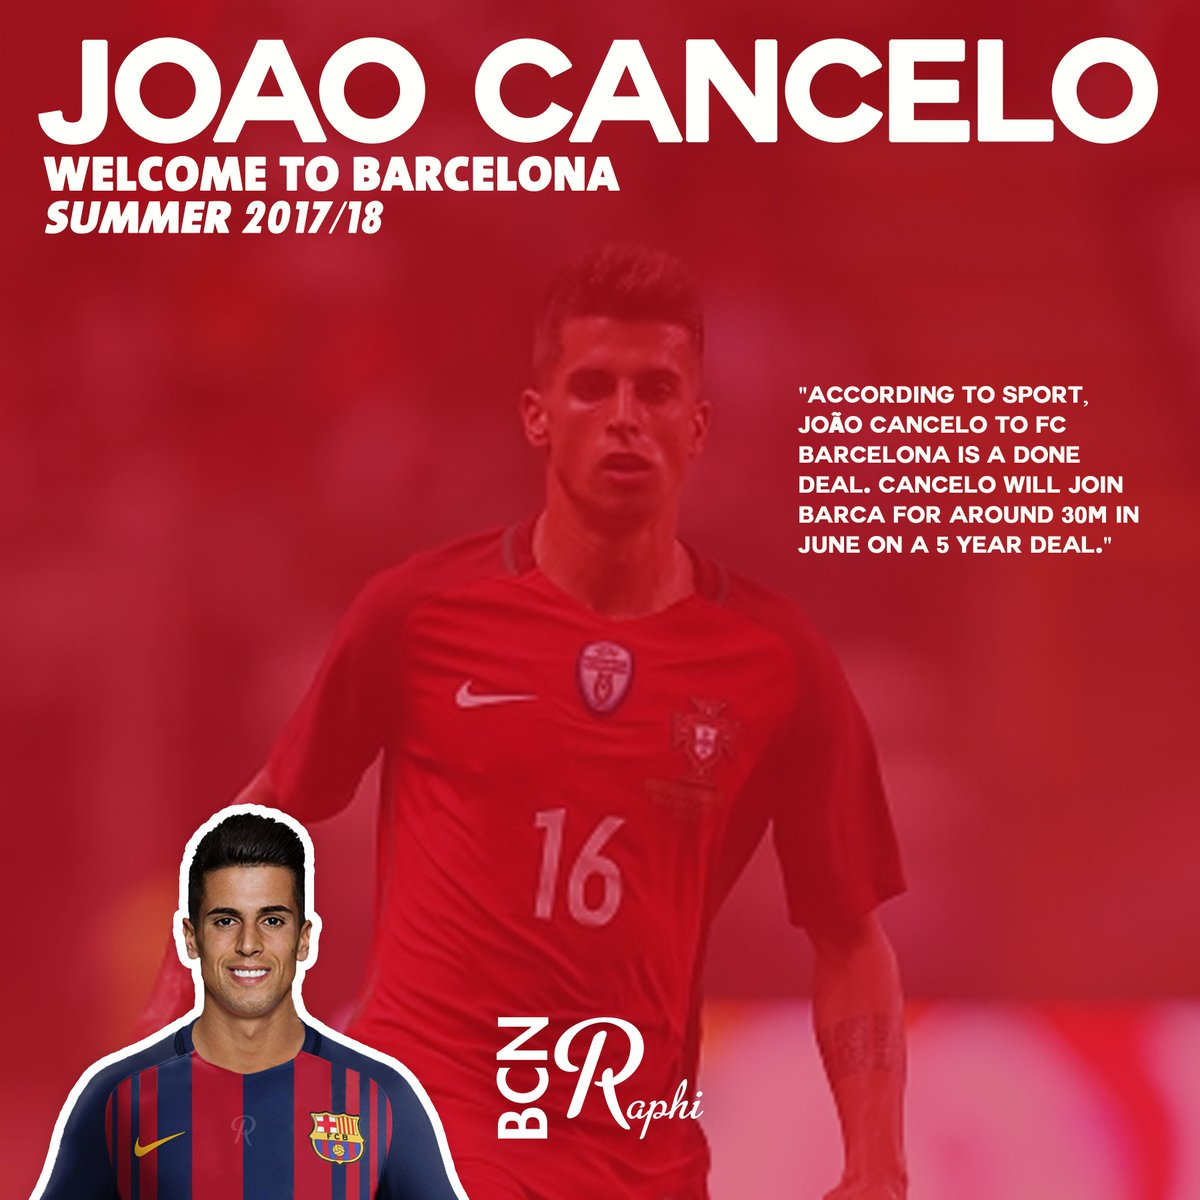 Raphi On Twitter Joao Cancelo Welcome To Barca Edit According To Sport Cancelo To Barca Is A Done Deal He Will Join For 30m On A 5 Year Deal Https T Co 4eog61ogcu